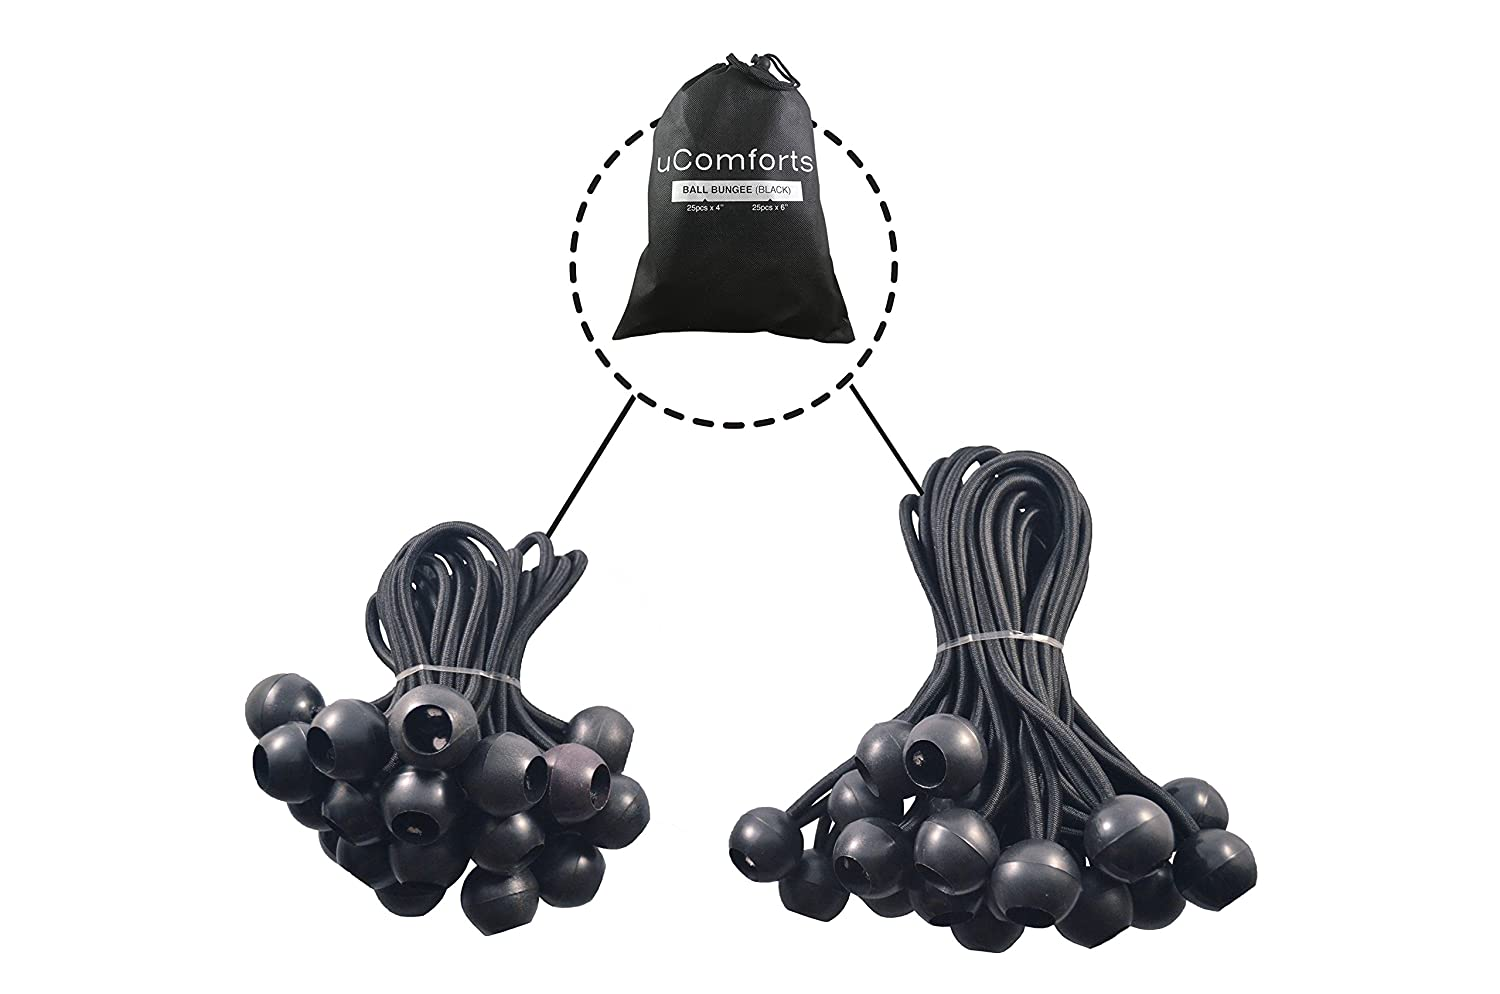 Bungee Loop with Ball Tarp Bungee Cords ECROCKET uComforts Premium Black Ball Bungee Cords 6 inch Black UV Treated Cord Ball Bungee Cord Giving You The Best New Ball Bungee Quality 50 Pack of 4 inch